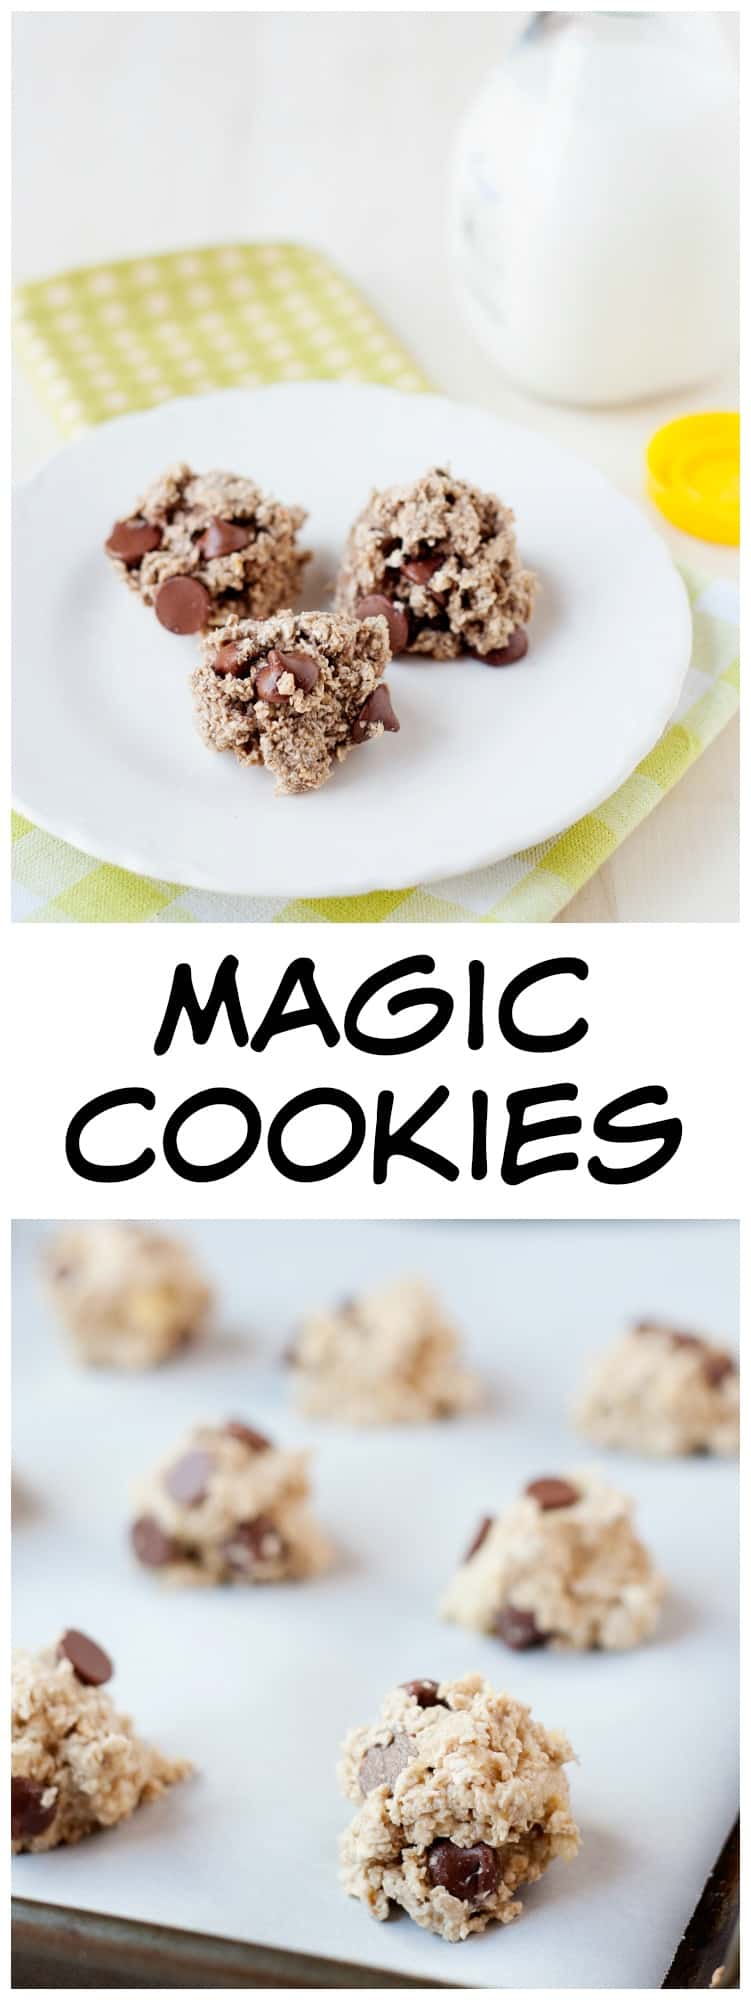 A 2 Ingredient Cookie Recipe? Yes! These are magic cookies! Perfectly portioned and easy to make.